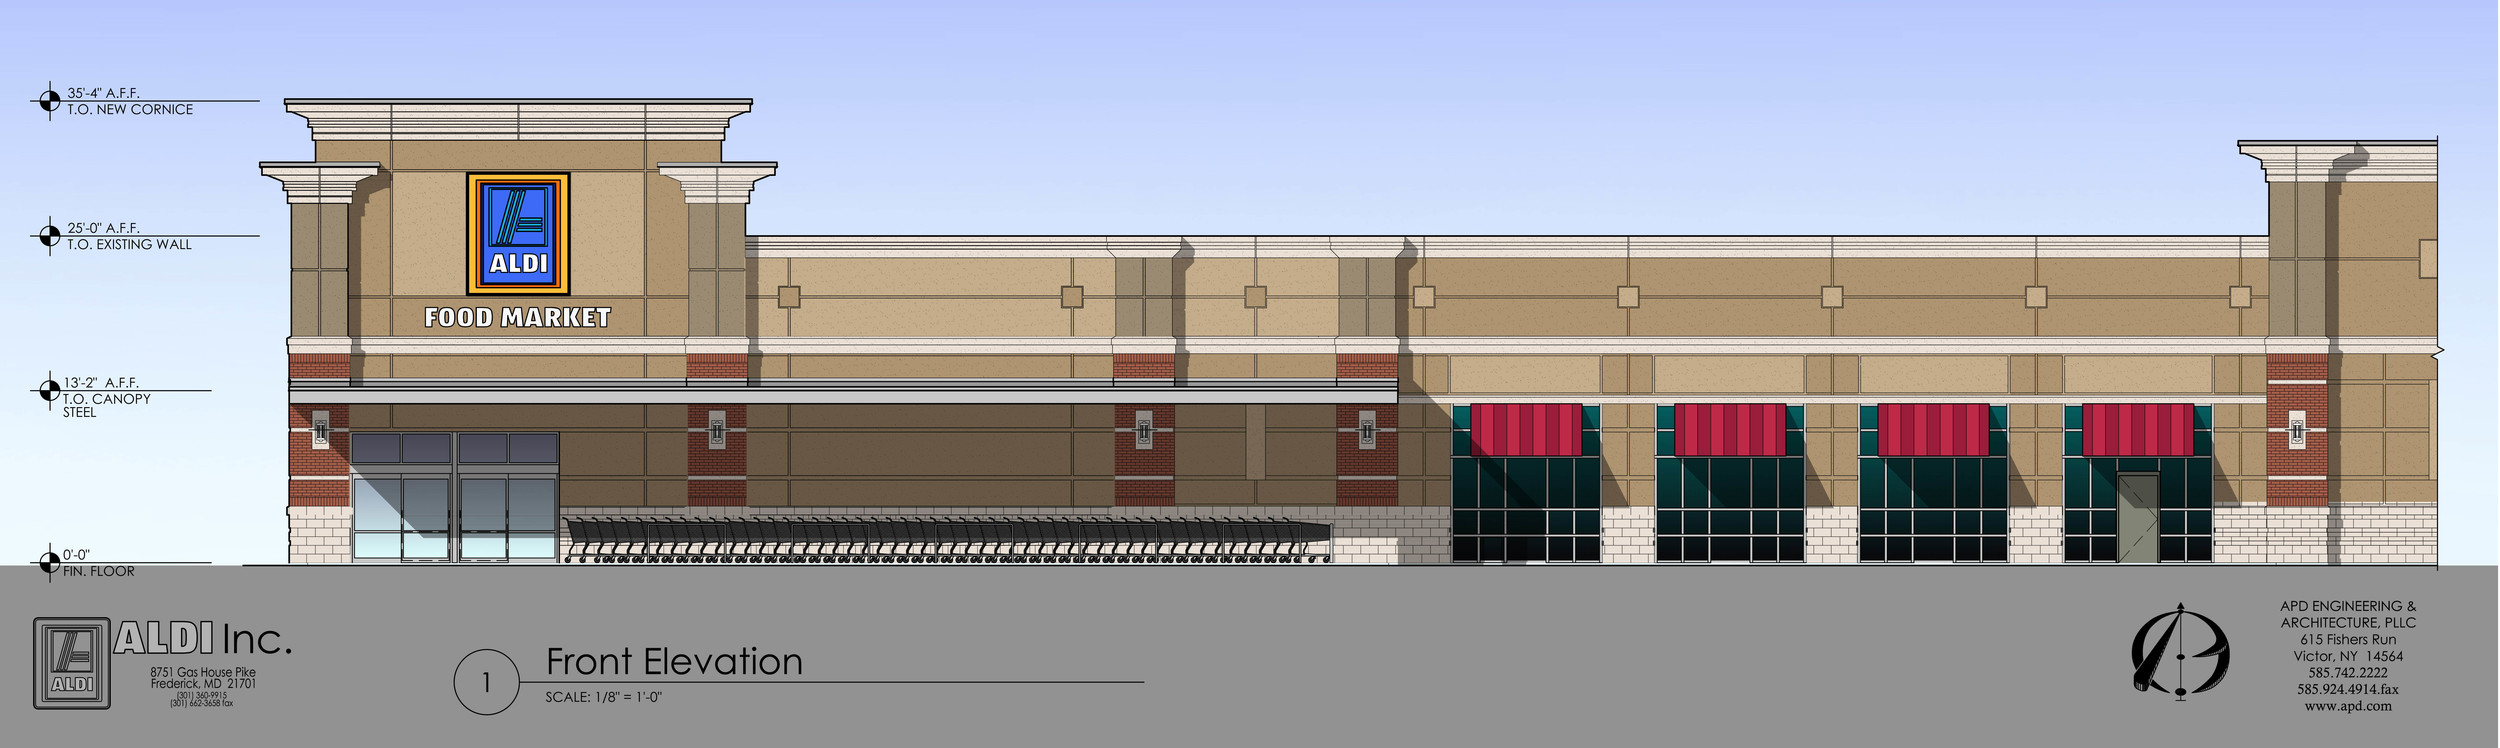 ALDI front elevation.jpg